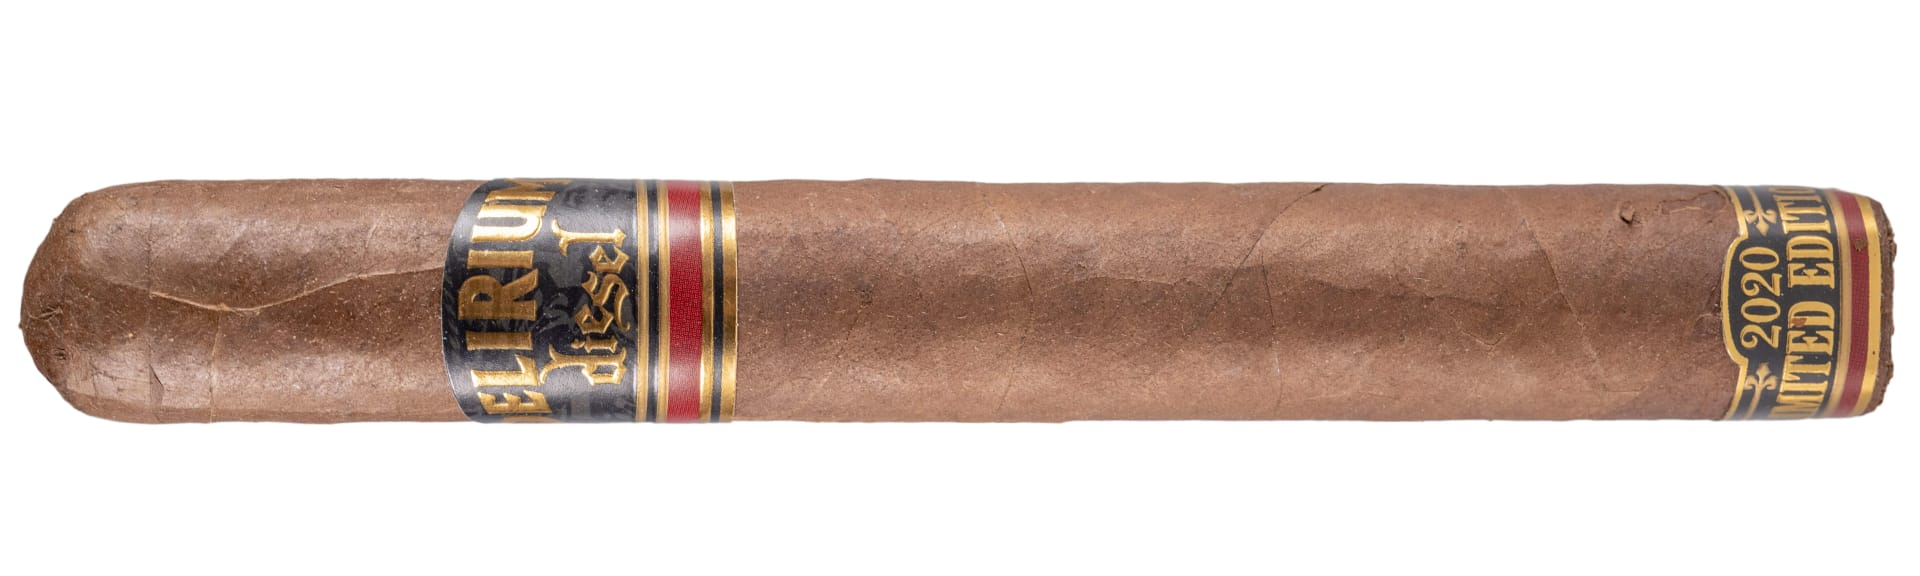 Blind Cigar Review: Diesel | Delirium Limited Edition 2020 Featured Image